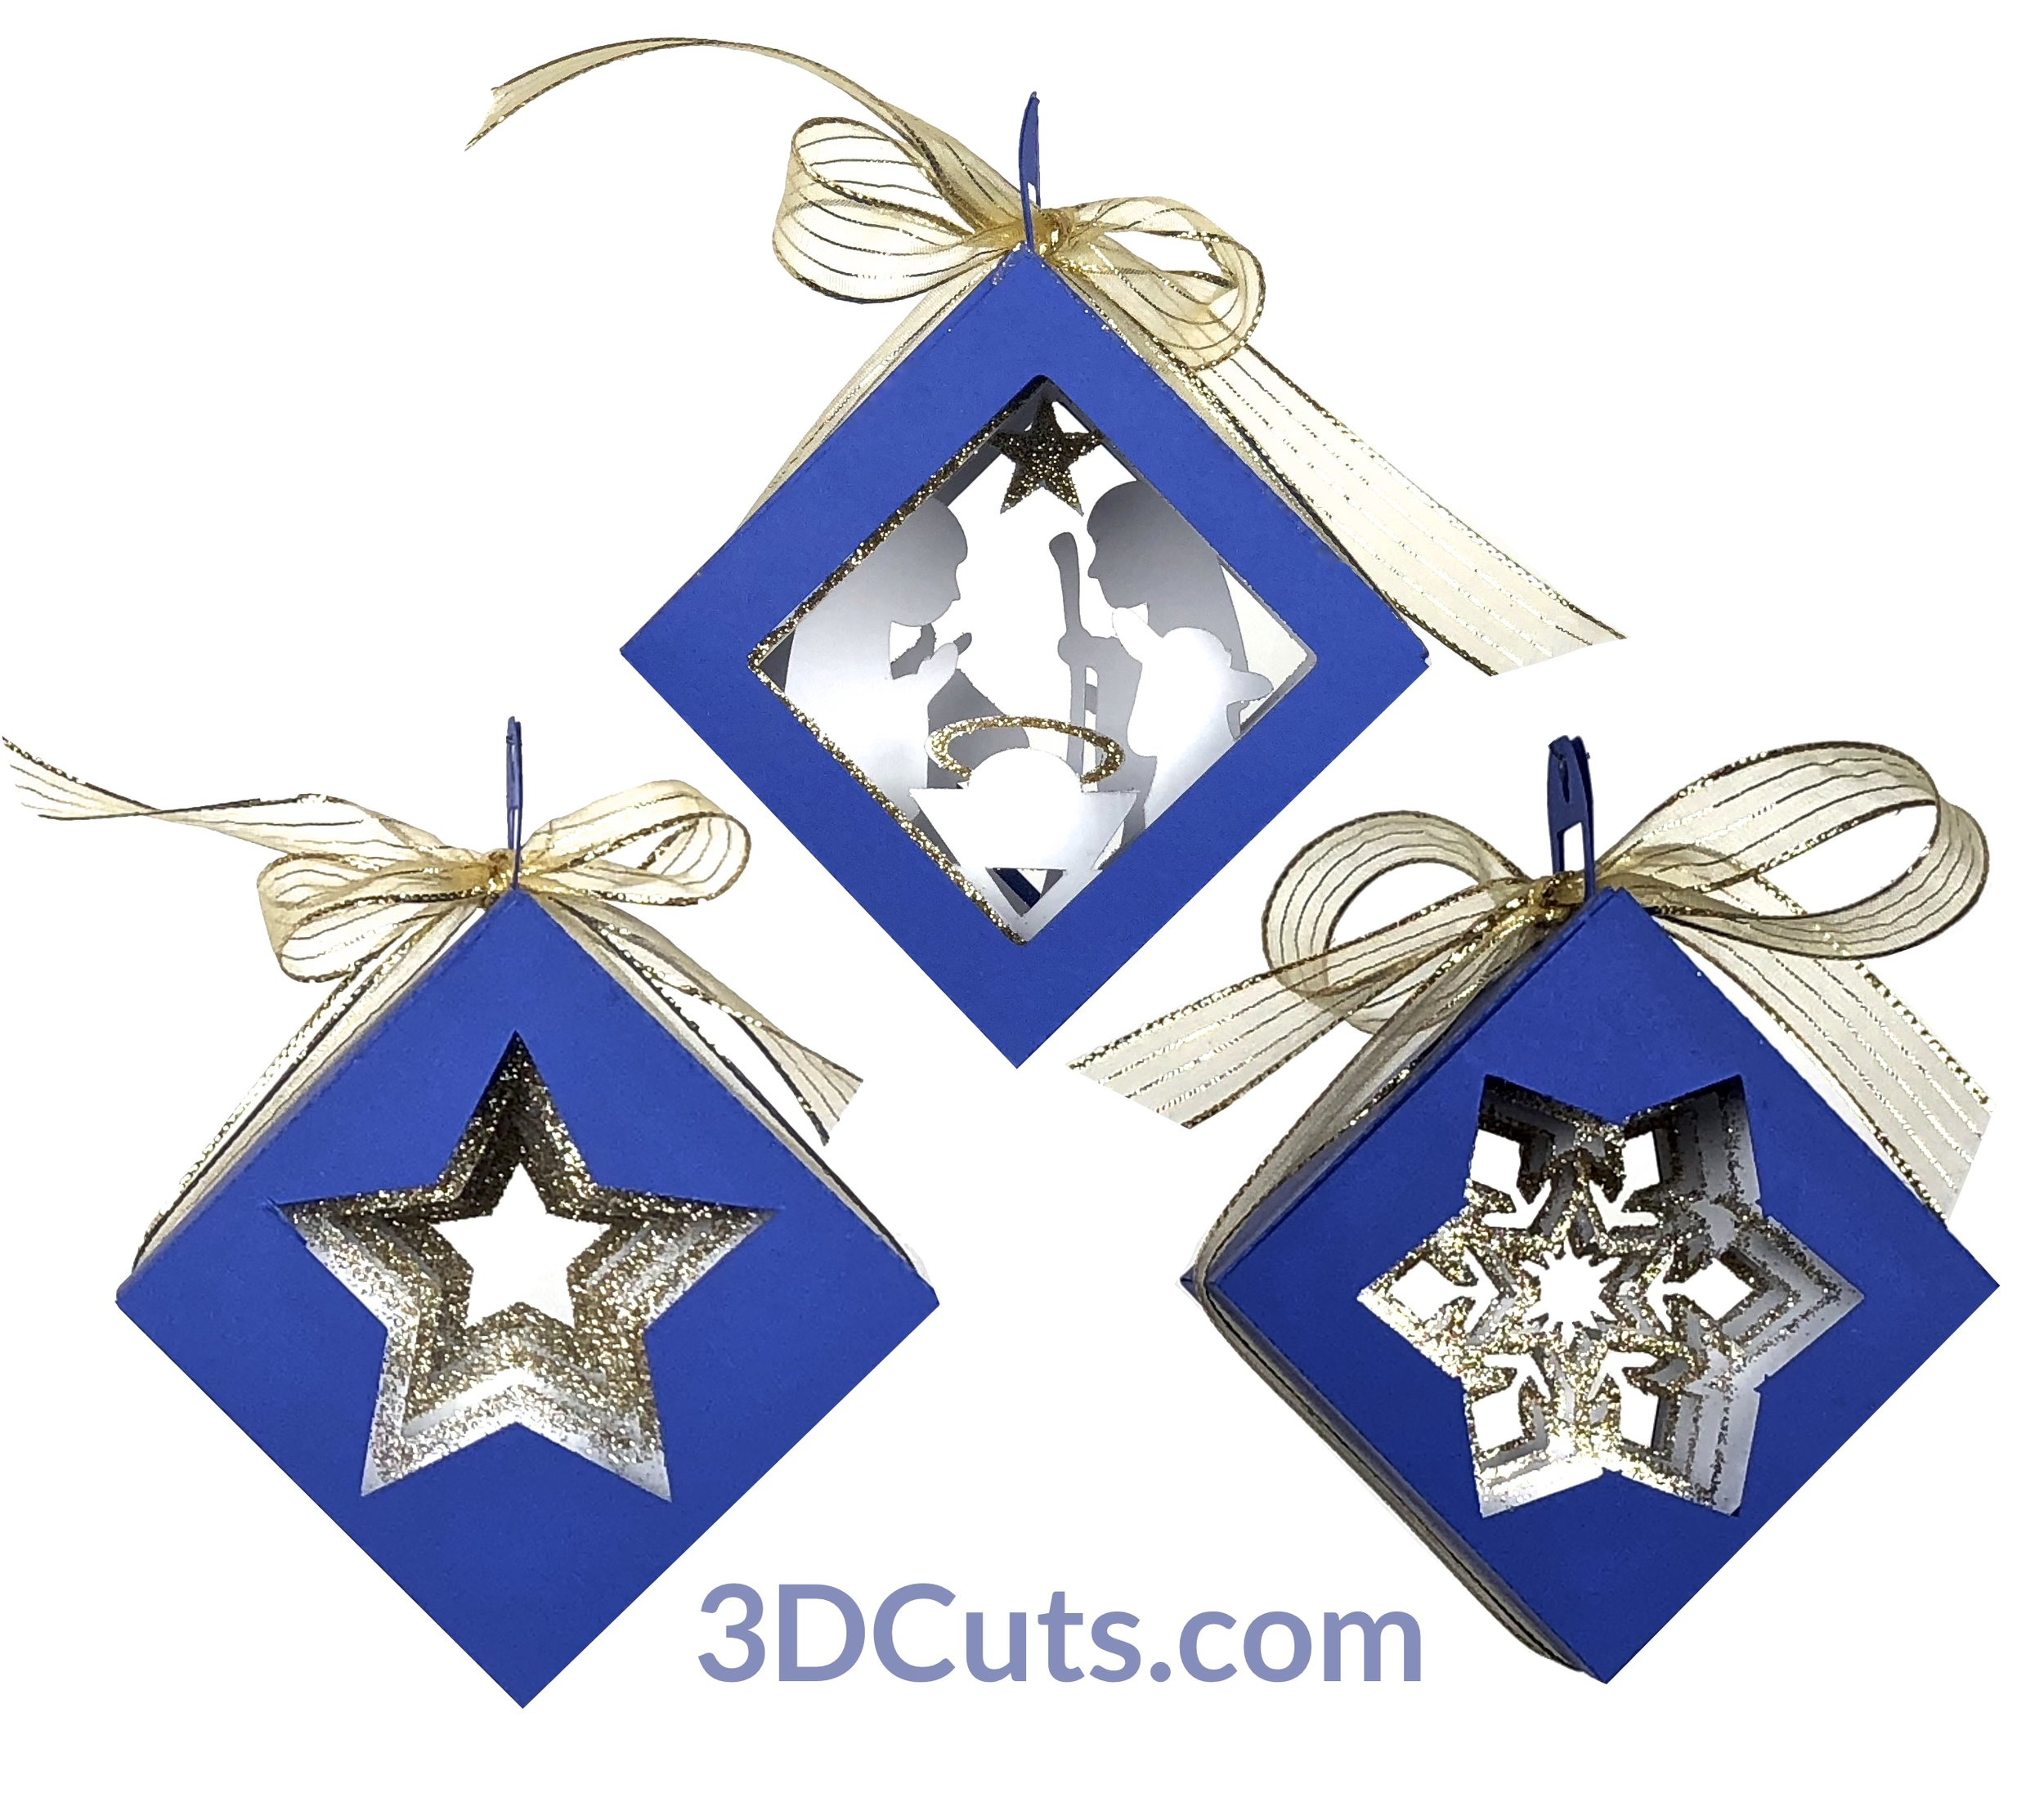 Cube Shadow Box Christmas Tree Ornaments, 3DCuts.com, Marji Roy, 3D cutting files in .svg, .dxf, and .pdf formats for use with Silhouette, Cricut and other cutting machines, paper crafting files